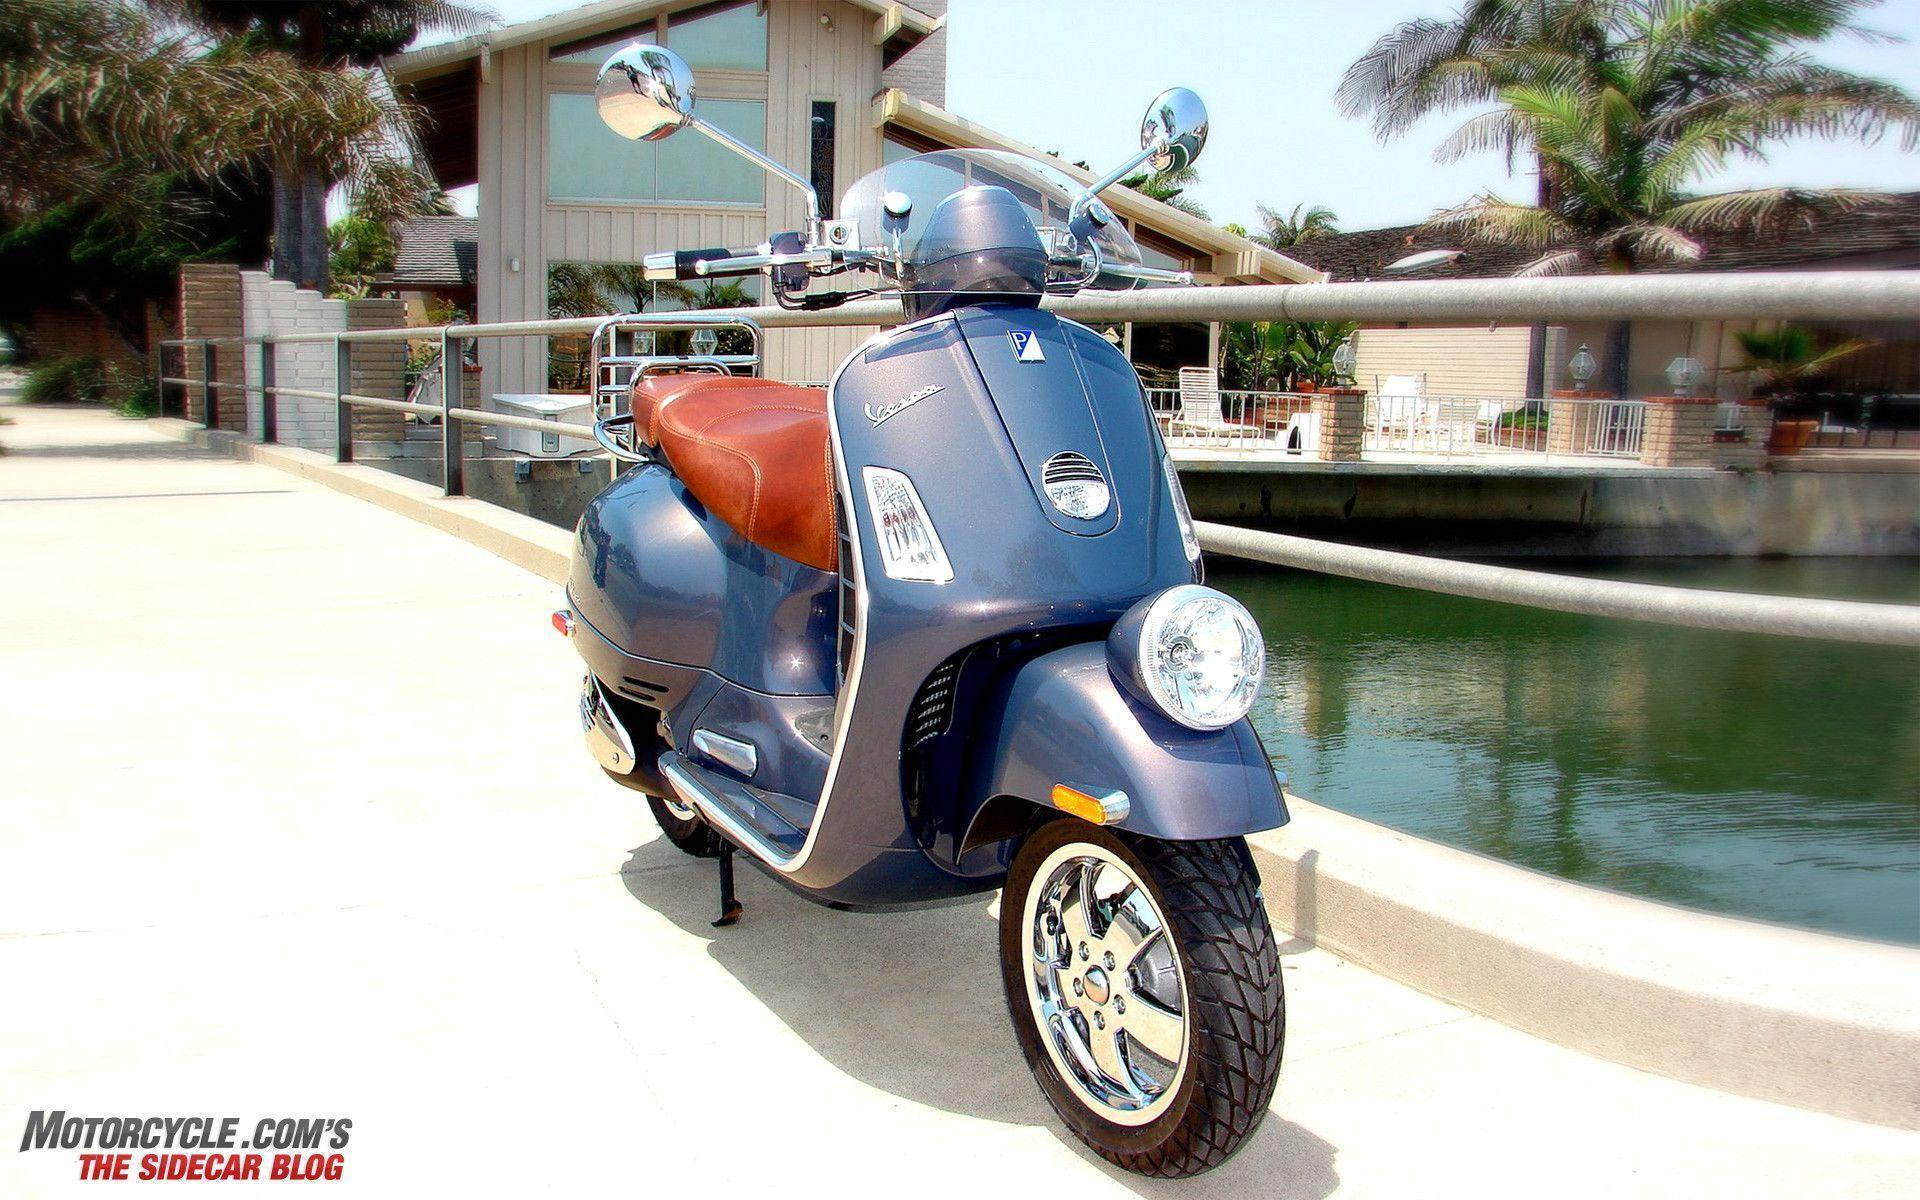 Vespa wallpaper - 59125